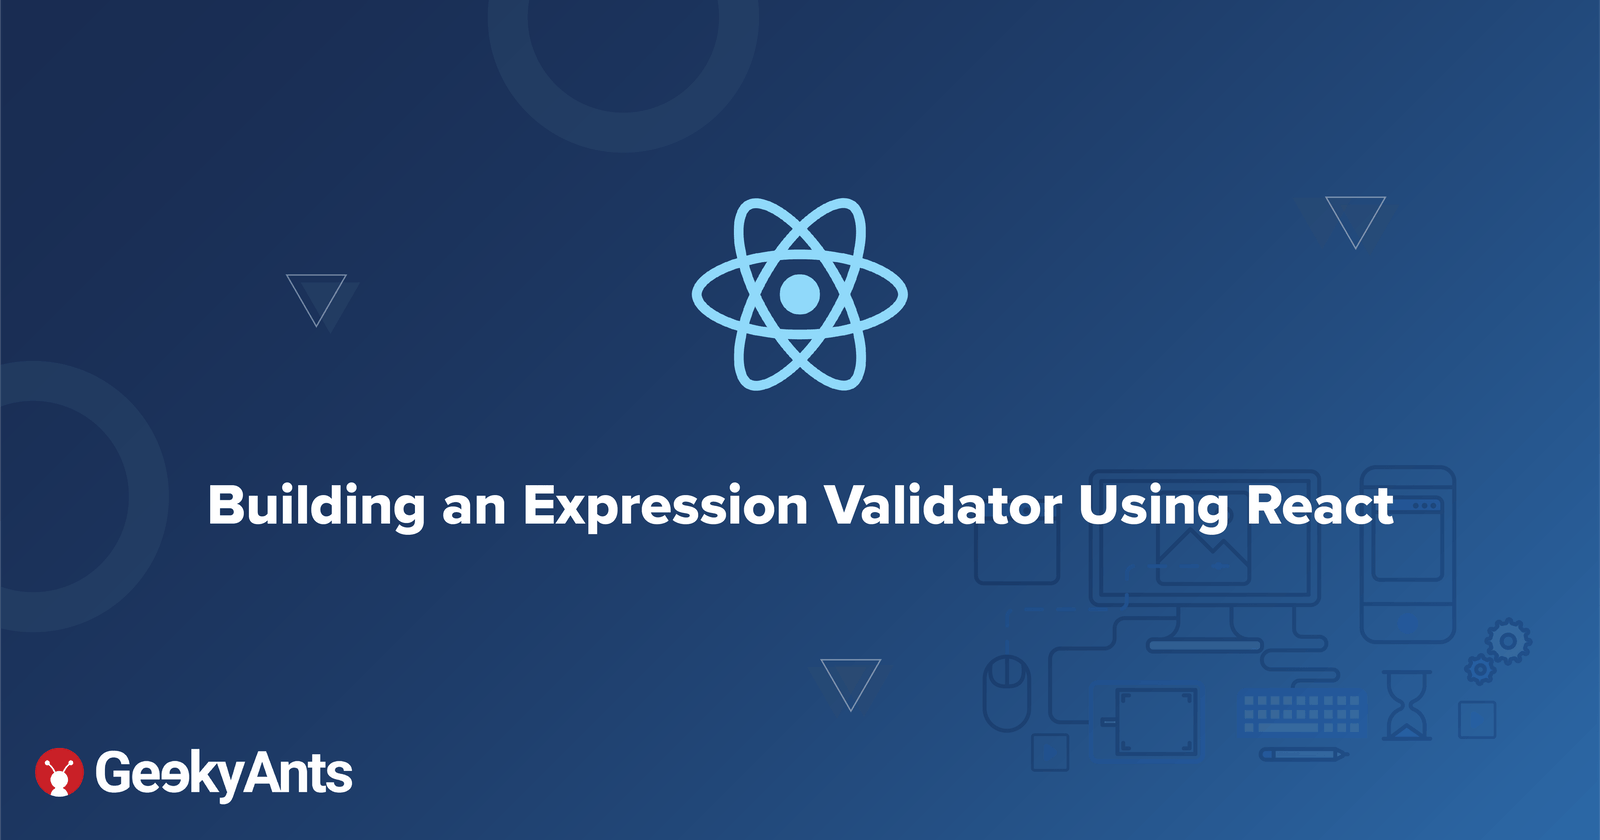 Building an Expression Validator Using React